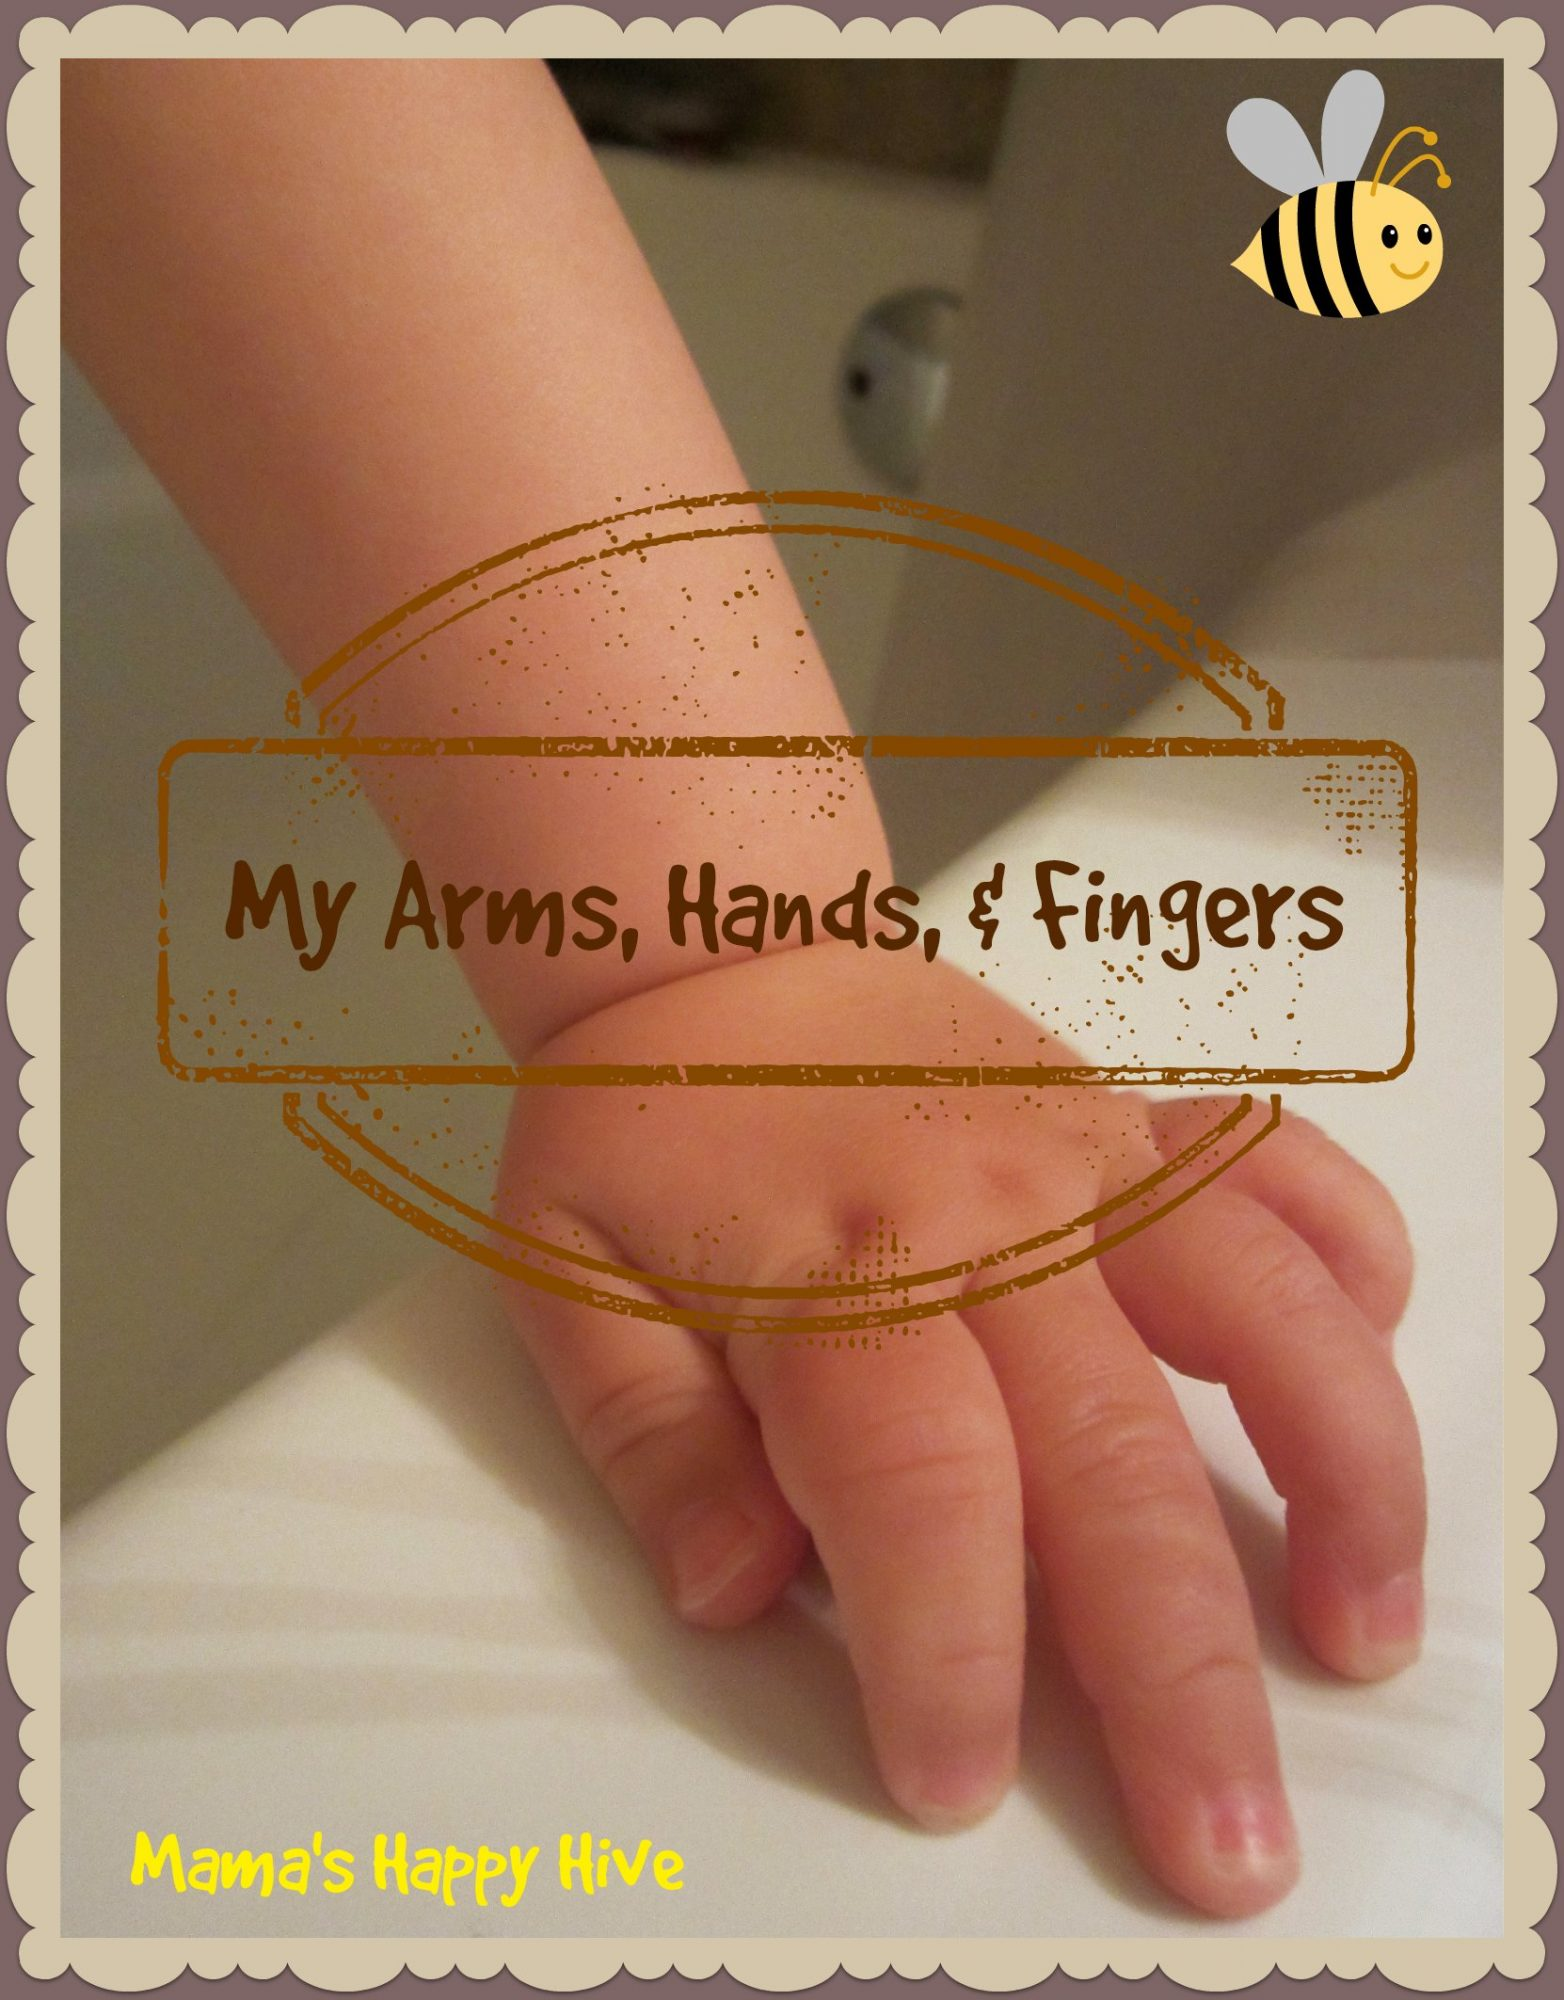 arms, hands, fingers.jpg